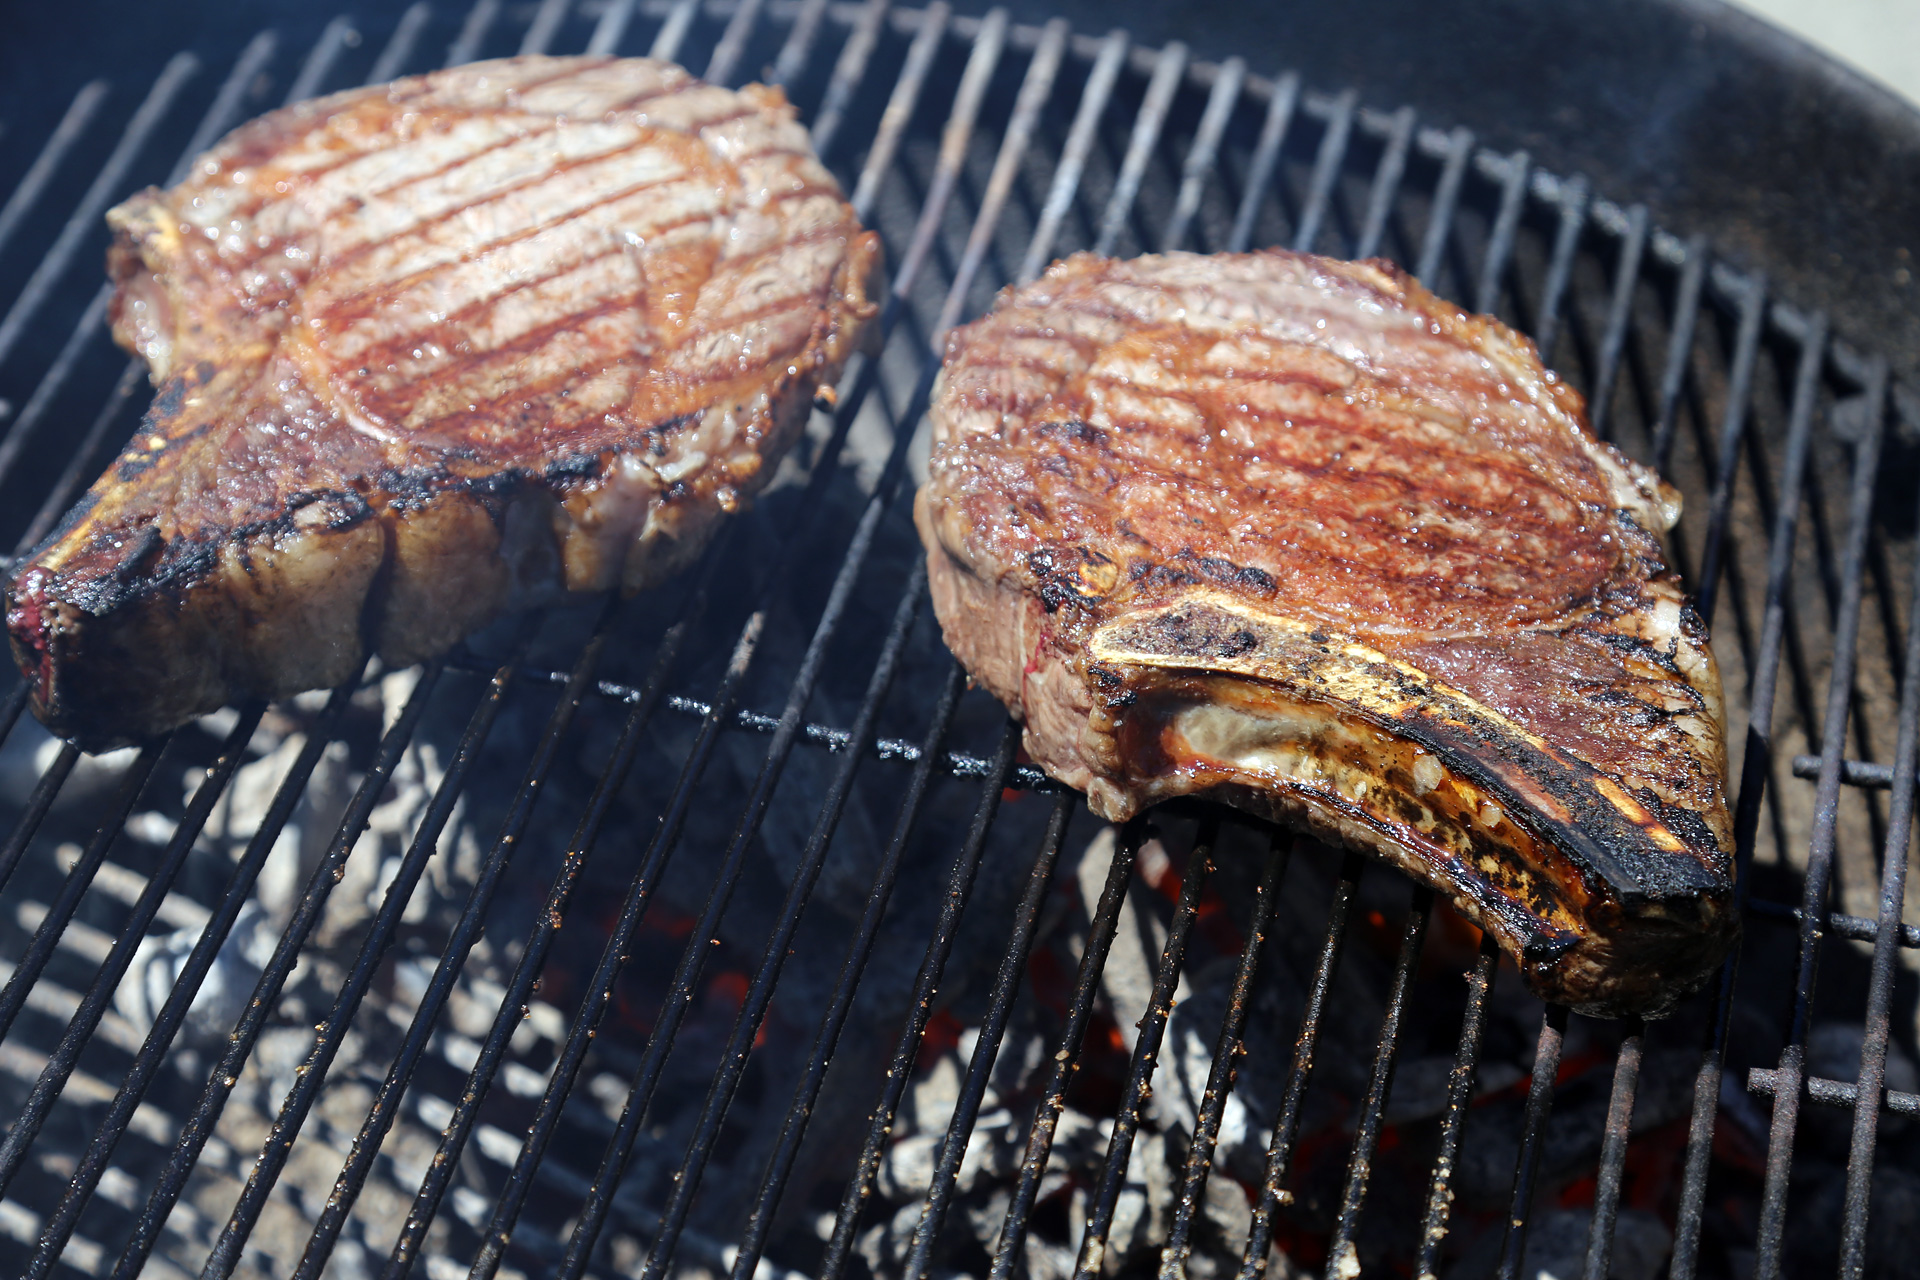 Sear the steak over the hot fire until a nice char forms on the exterior, turning occasionally.